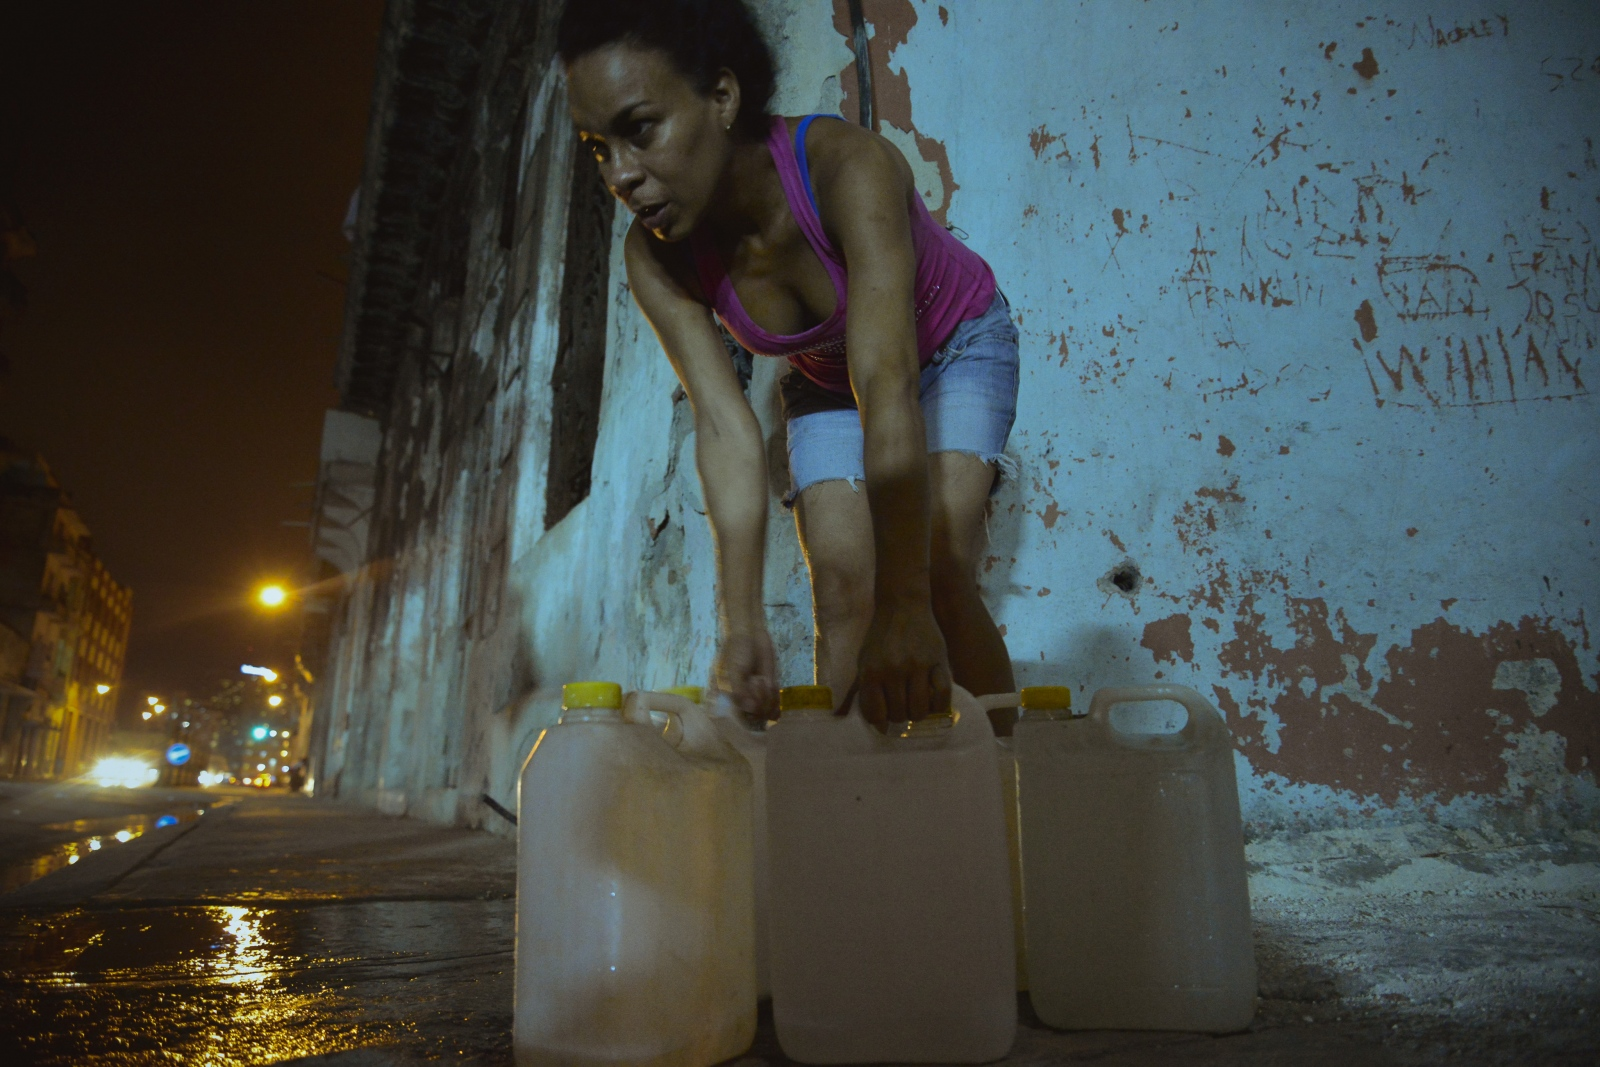 In the evening, Nidieska must gather gallons of water from a public water spigot five blocks from her home. Due to her AIDs and Osteoporosis, the journey is very difficult for her. Ariam usually helps Nidieska with the daily chore.